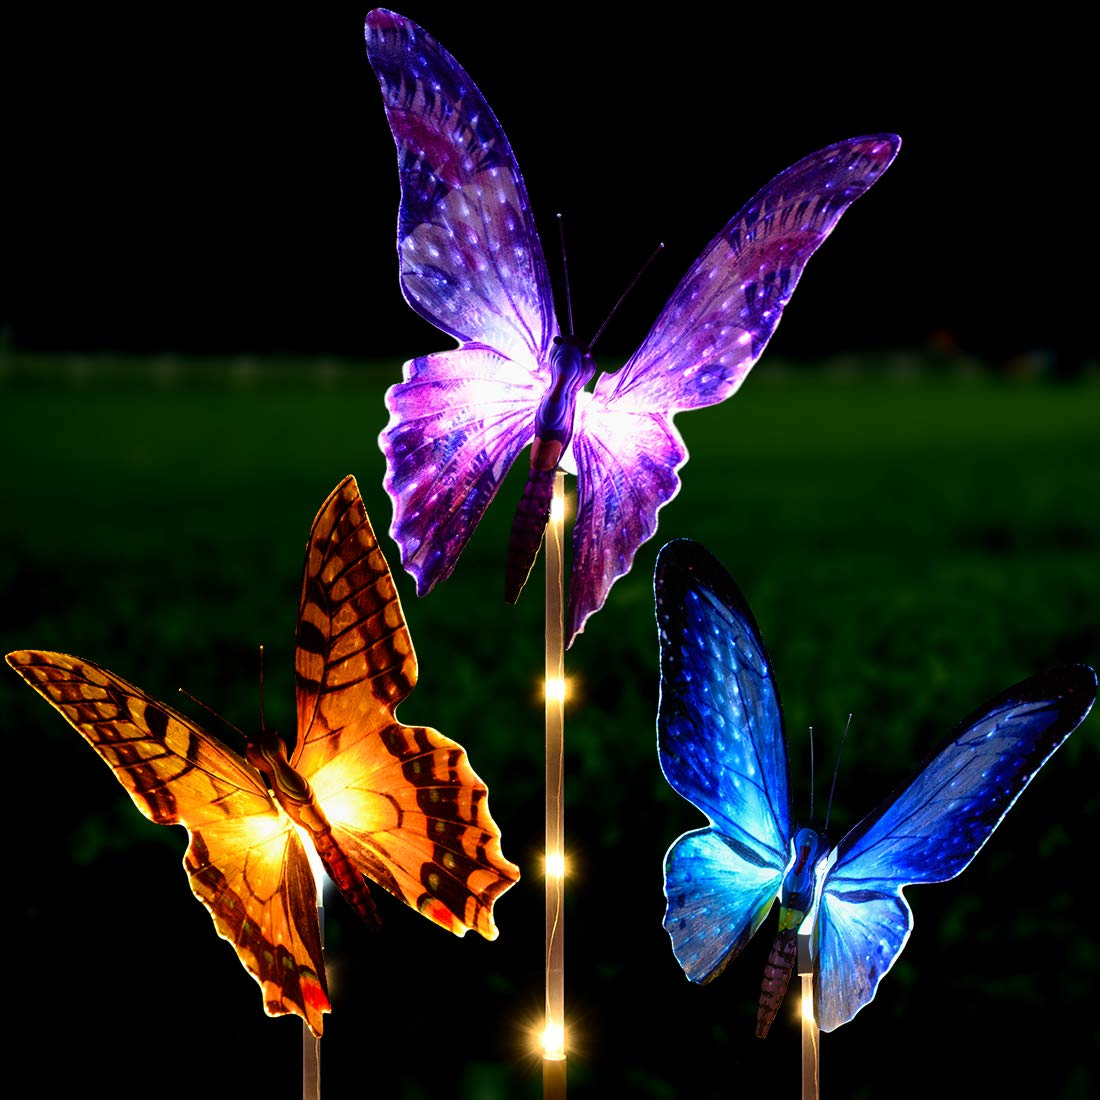 Solar Garden Lights Outdoor - Kearui 3 Pack Solar Stake Light with Fiber Optic Butterfly Decorative Lights, Multi-Color Changing LED Solar Lights for Garden Decorations, Garden Gifts